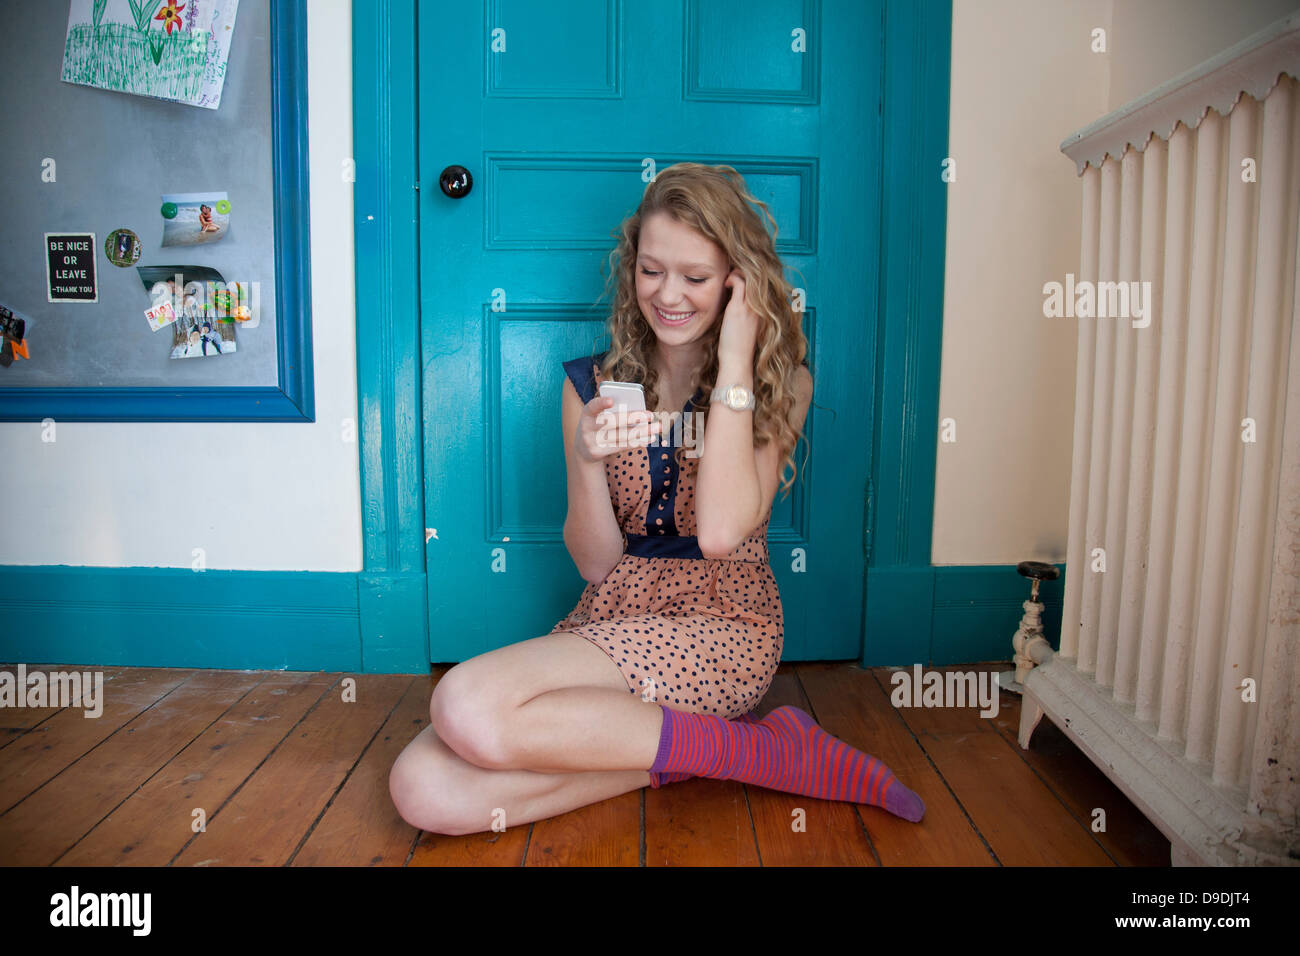 Teenager sitting in front of blue door, using mobile telephone - Stock Image